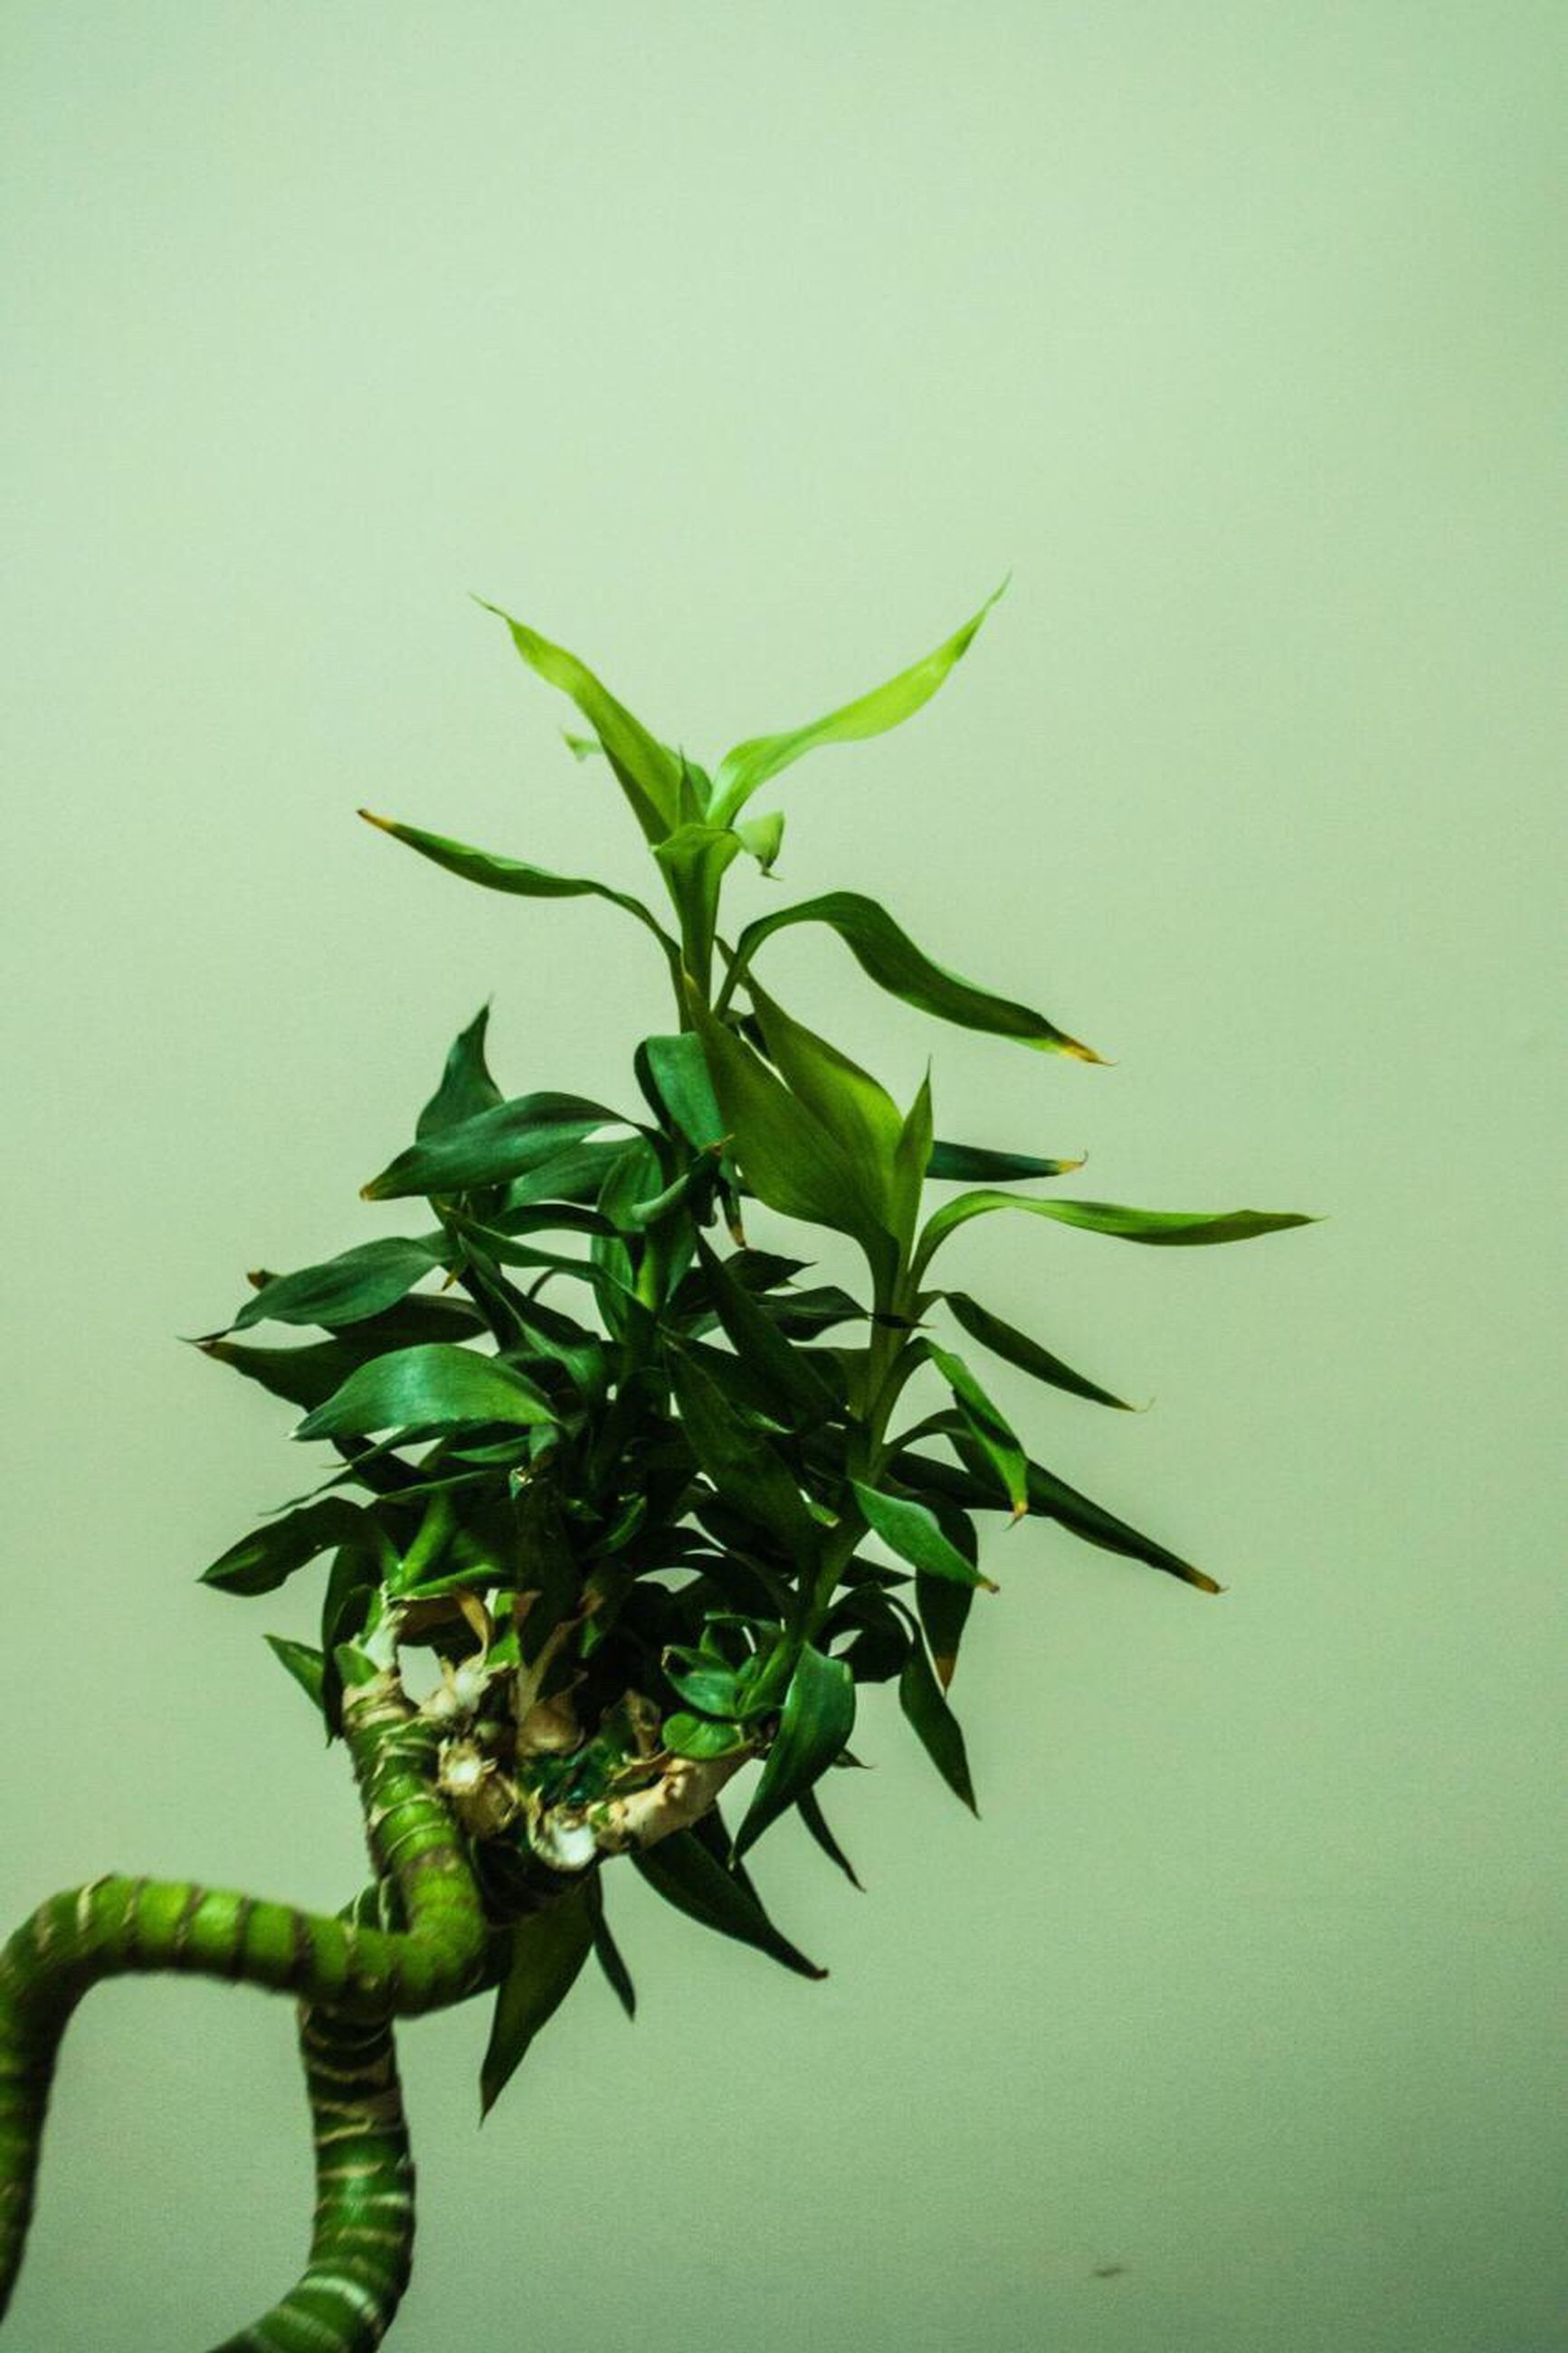 leaf, growth, plant, close-up, nature, green color, no people, branch, freshness, olive tree, beauty in nature, indoors, day